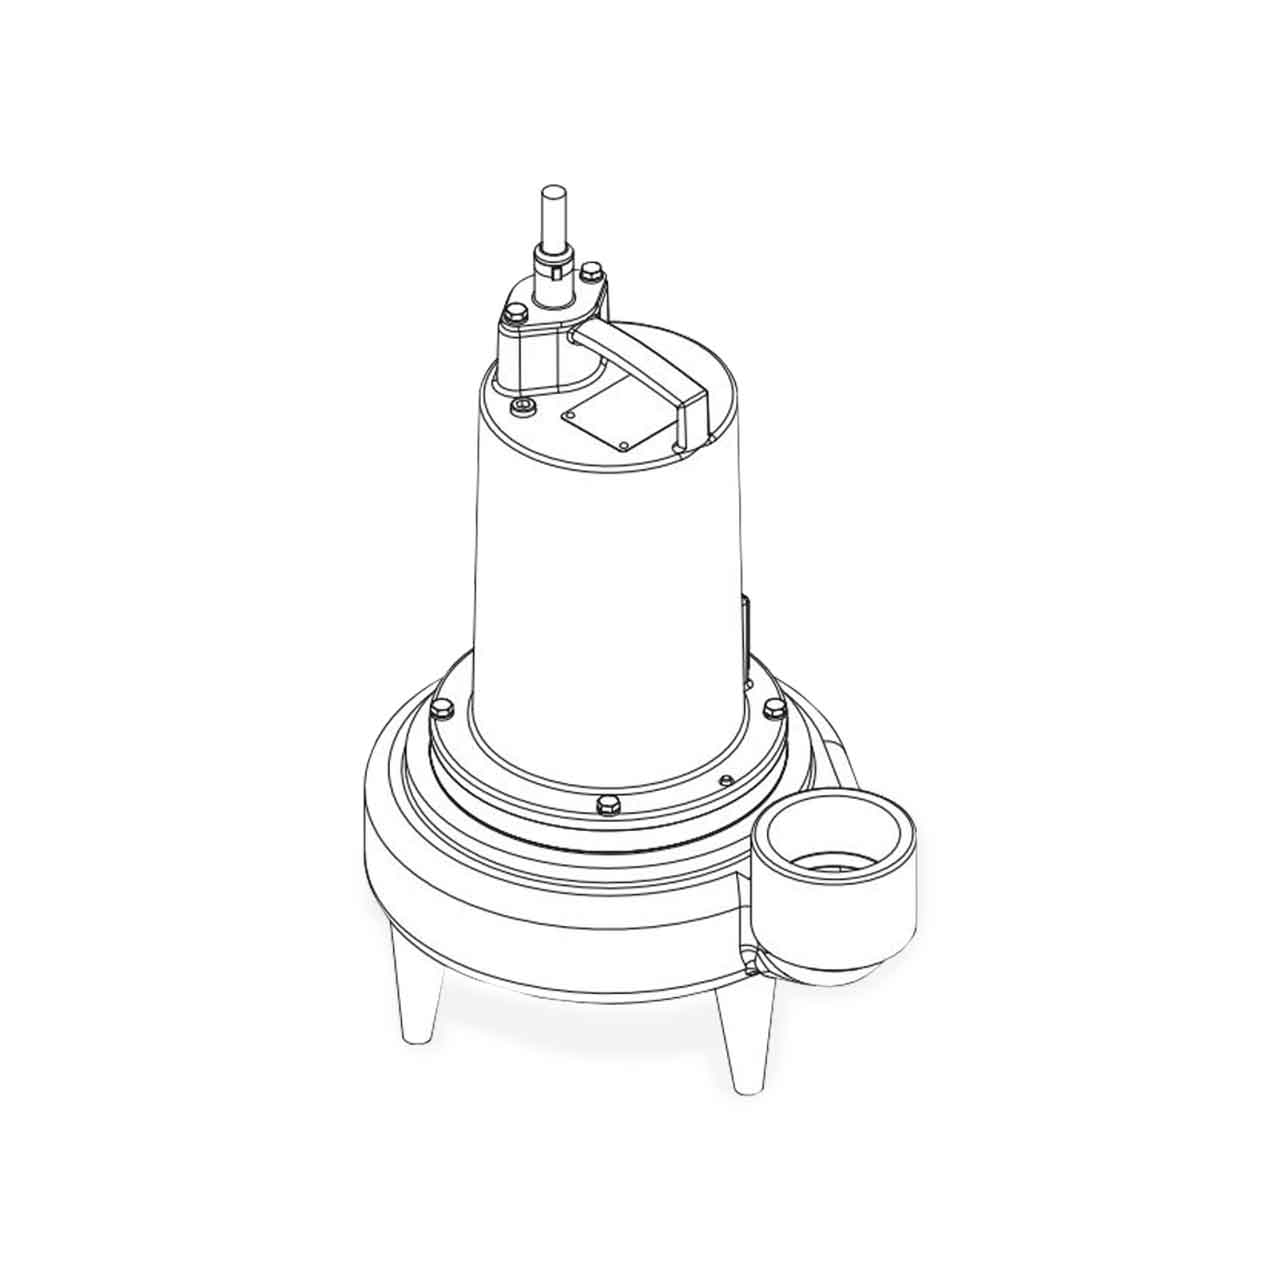 hight resolution of barnes barnes 3se2044l submersible sewage ejector pump 2 0 hp 460v 3ph 30 cord manual brn132754